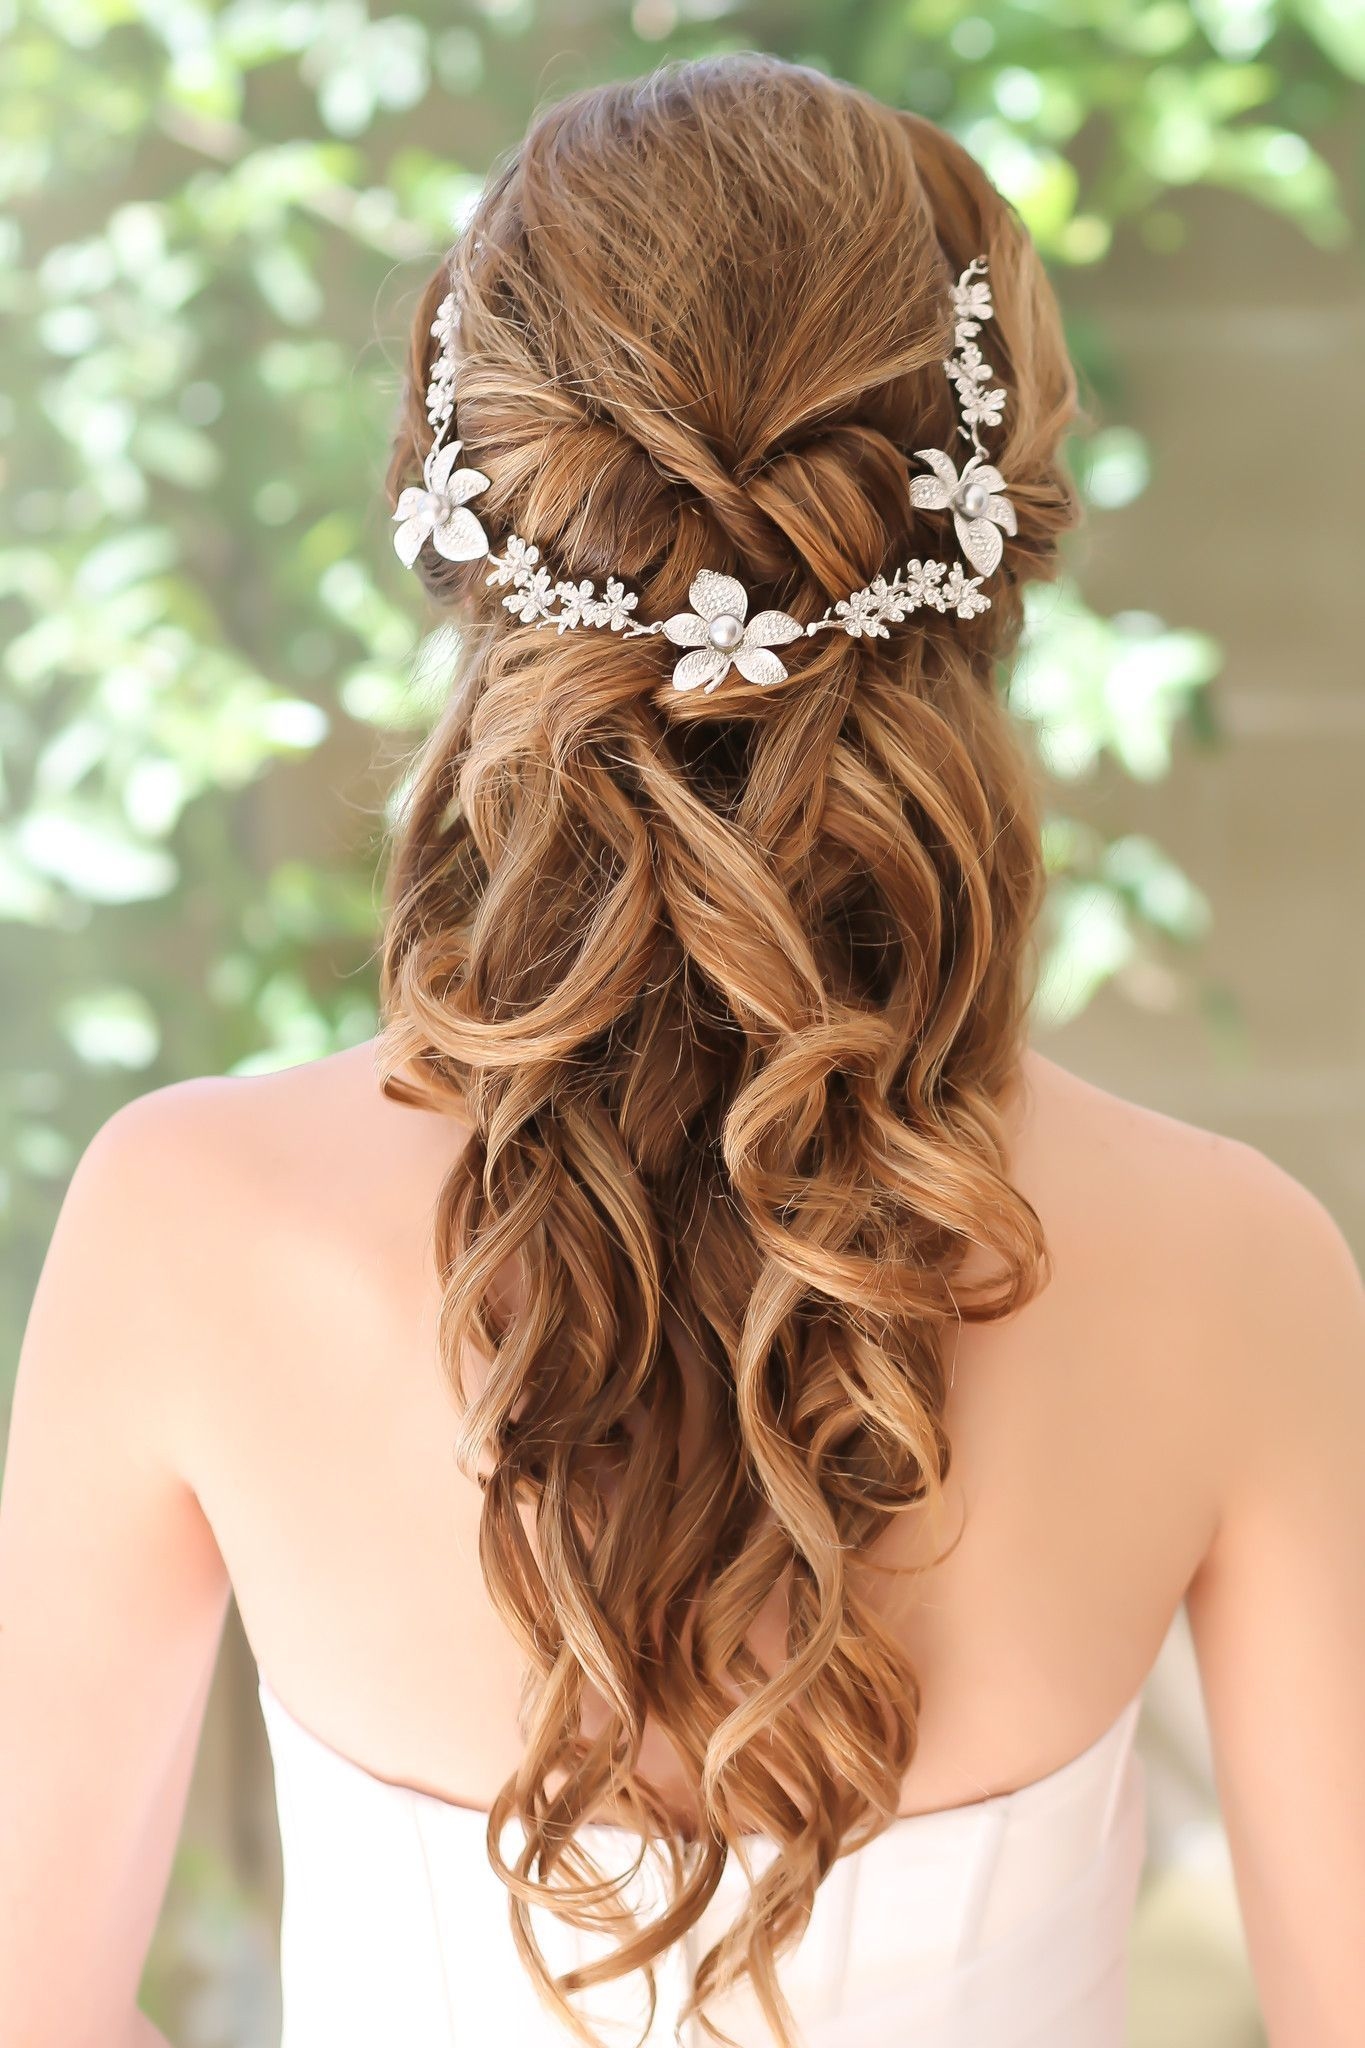 Andree Headpiece Wedding Hairstyles For Long Hair Wedding Hair Inspiration Bride Hairstyles